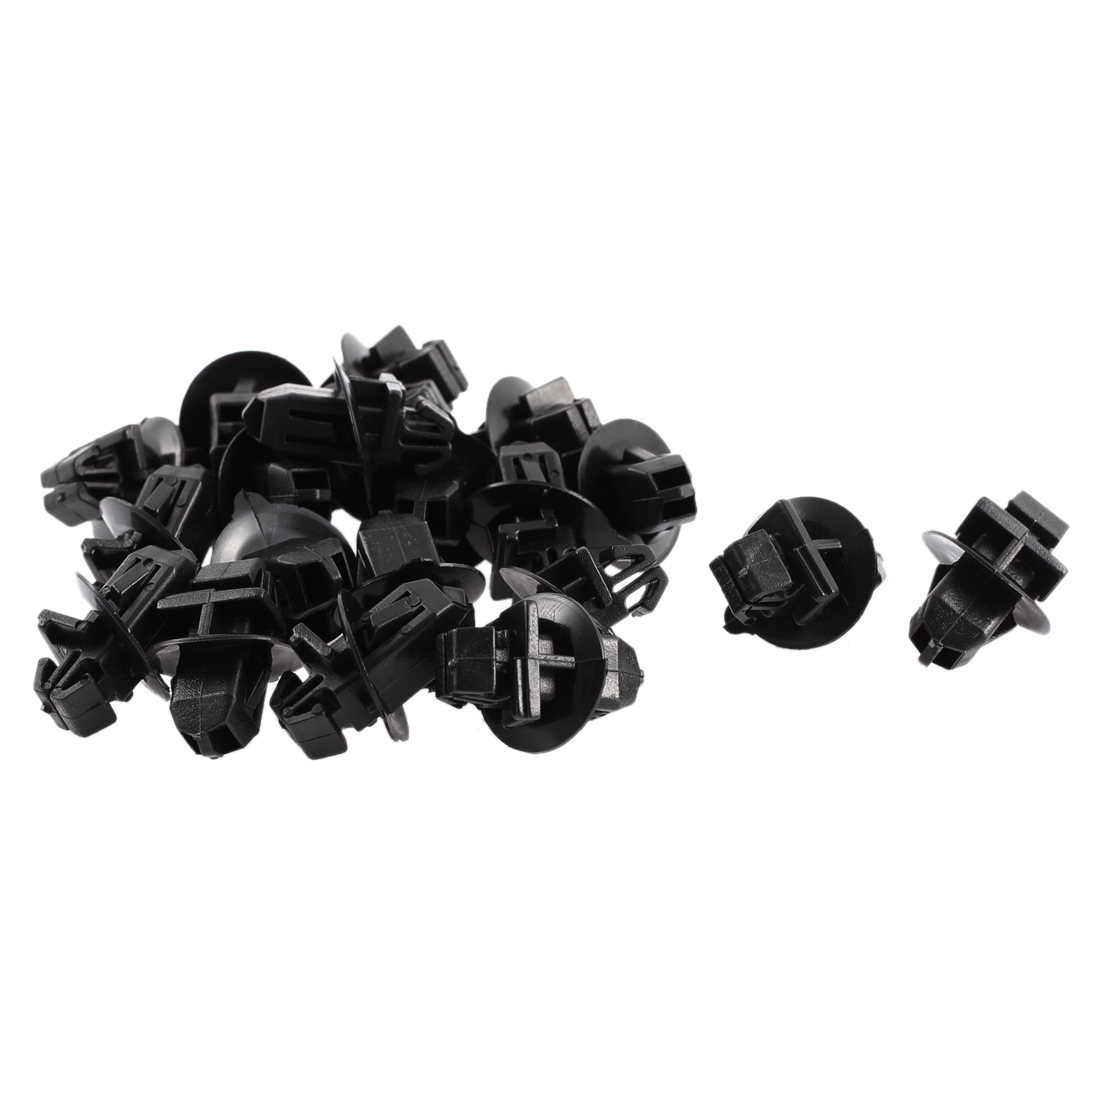 20 Pcs Black Plastic Rivet Bumper Lining Moulding Snap Clips for Toyota Prado